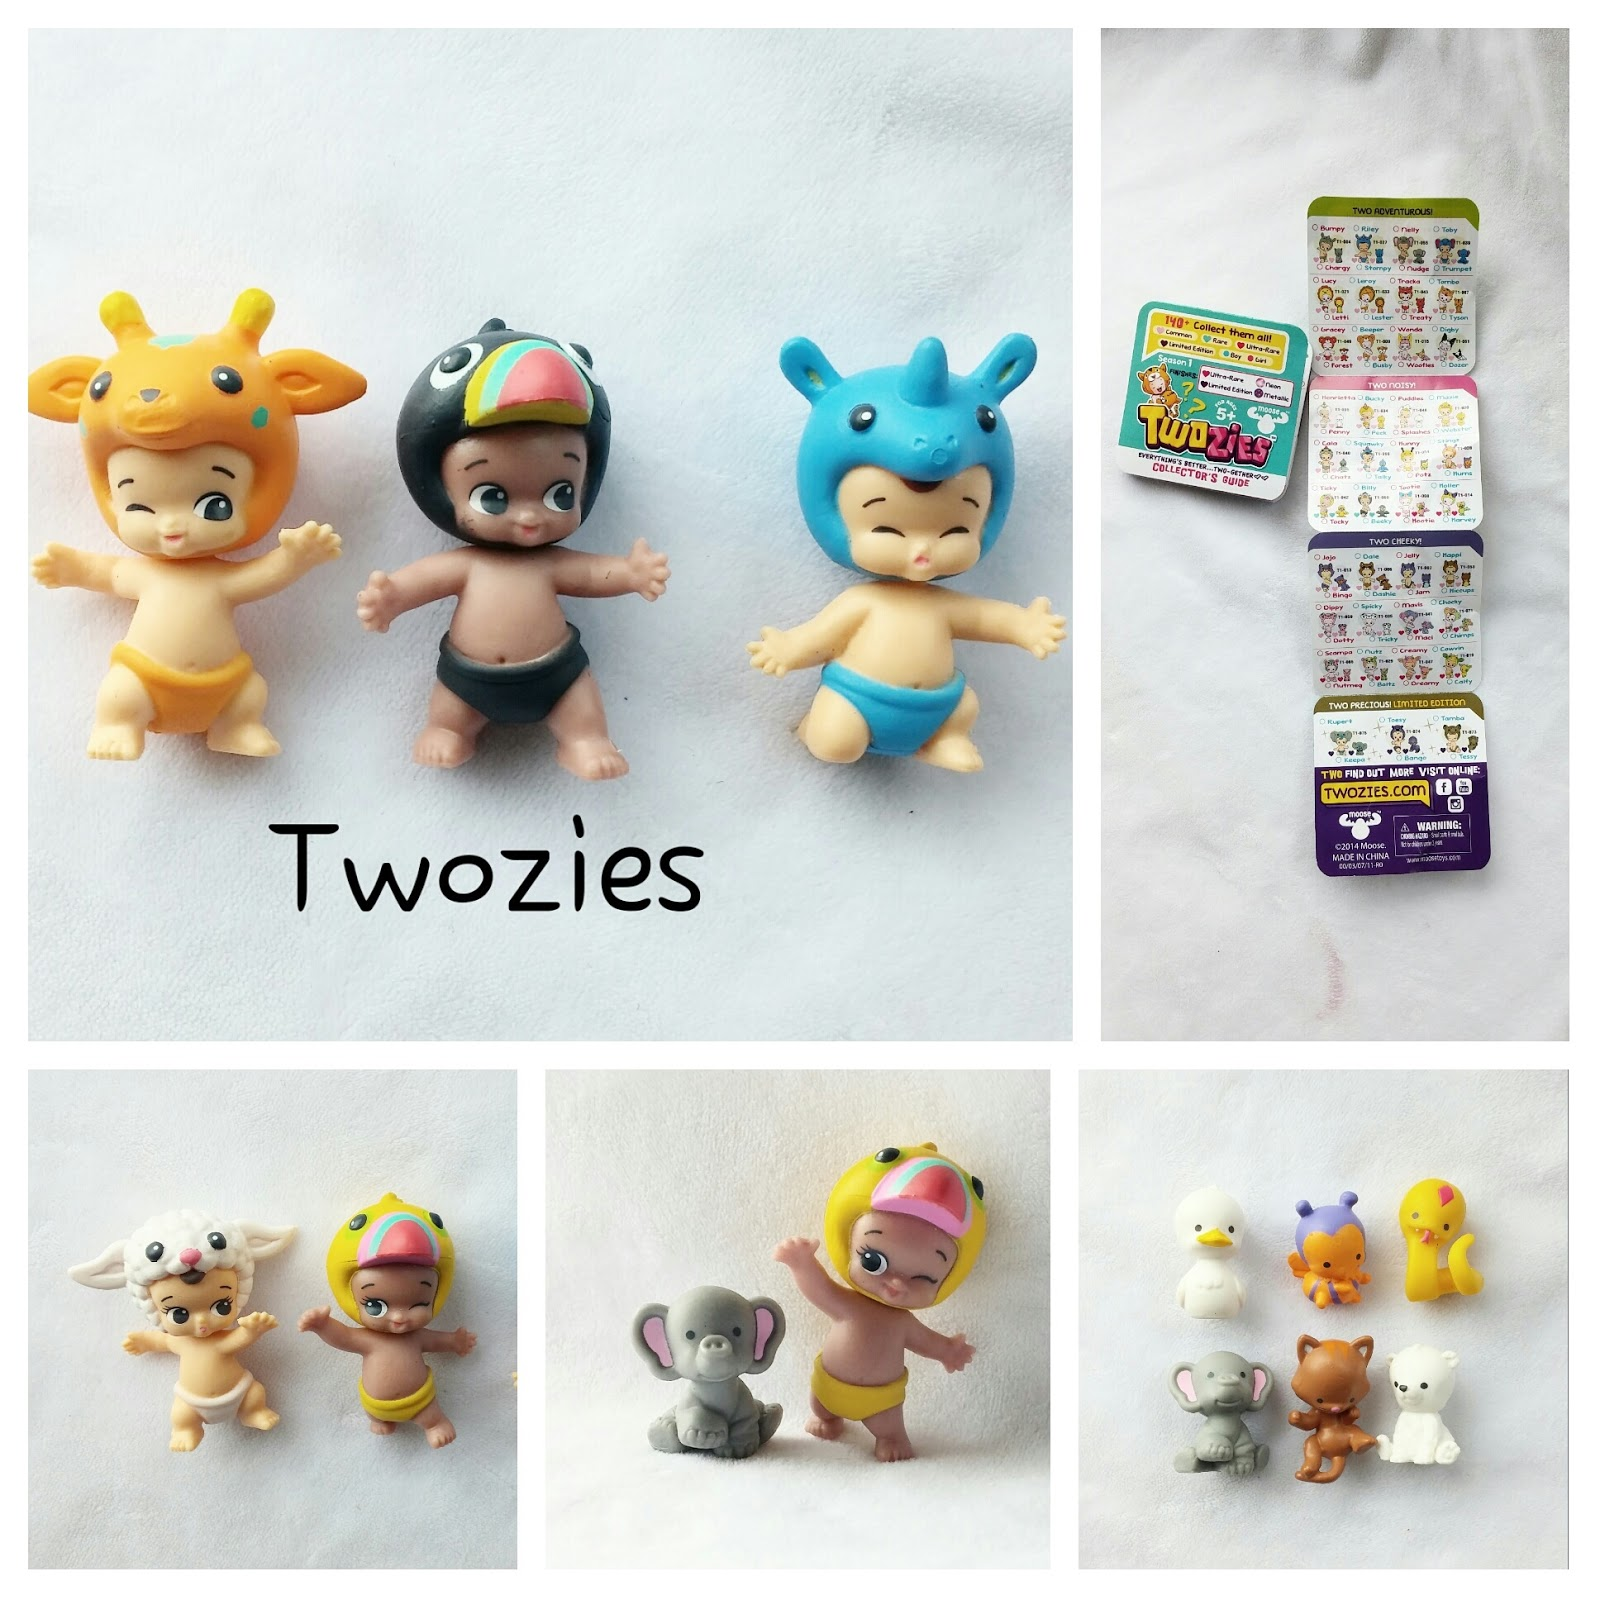 Whimsical Ways Twozies New From The Makers Of Shopkins